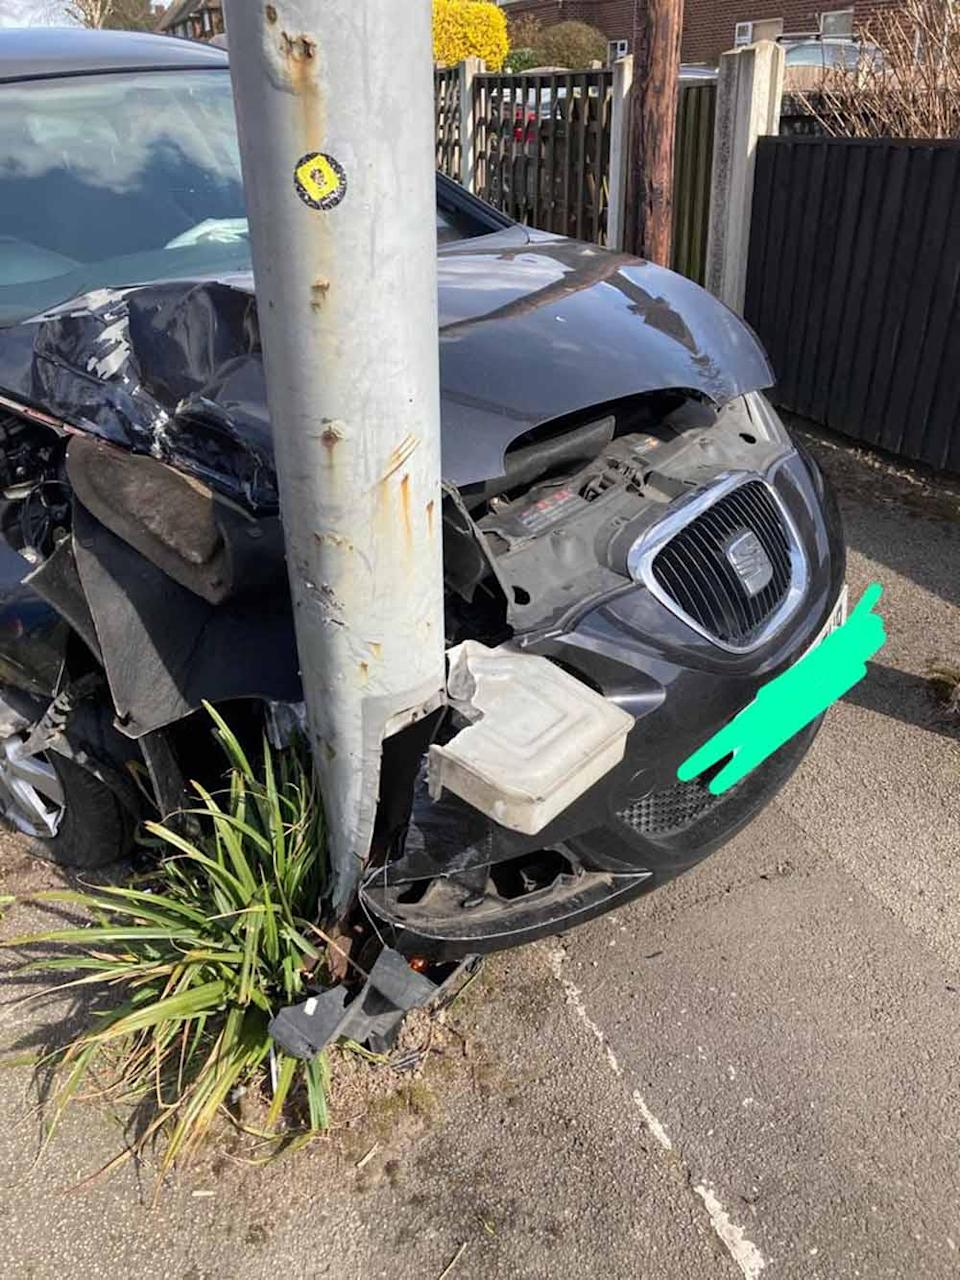 Paige's car was wrapped around a lamp post. PA REAL LIFE COLLECT